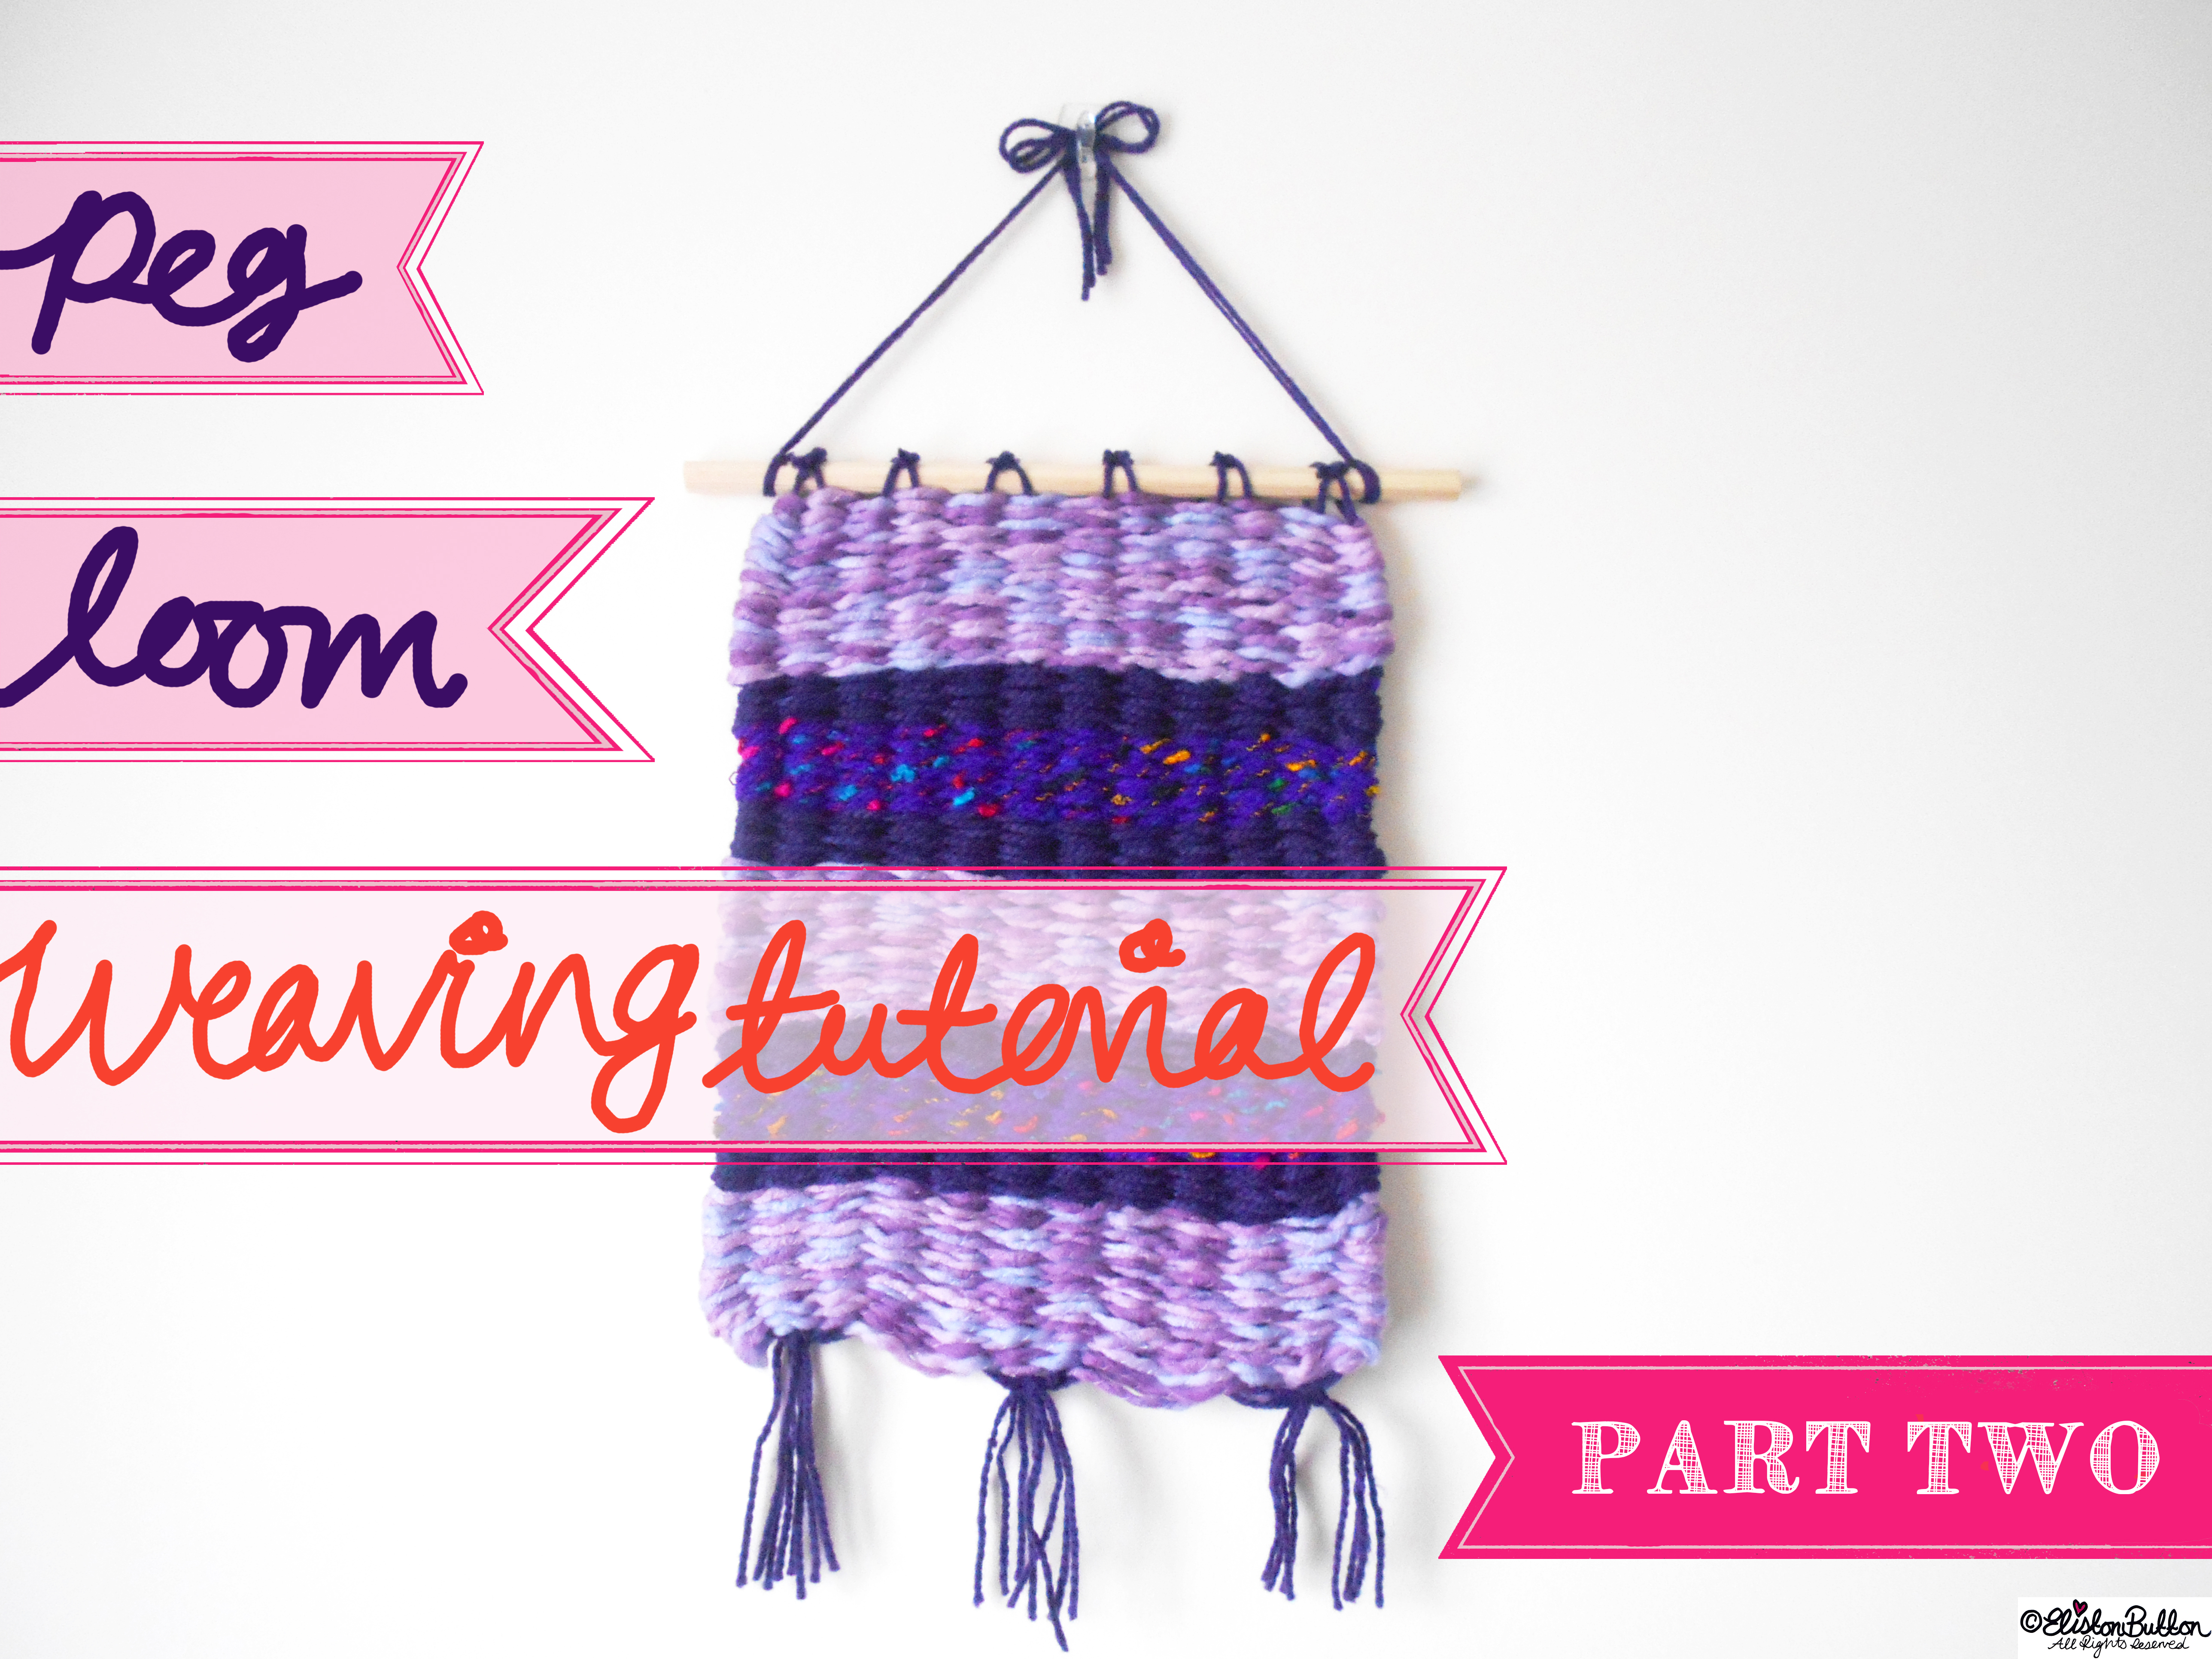 Peg Loom Weaving Tutorial Title. - Tutorial Tuesday - Peg Loom Weaving - Part Two at www.elistonbutton.com - Eliston Button - That Crafty Kid – Art, Design, Craft & Adventure.